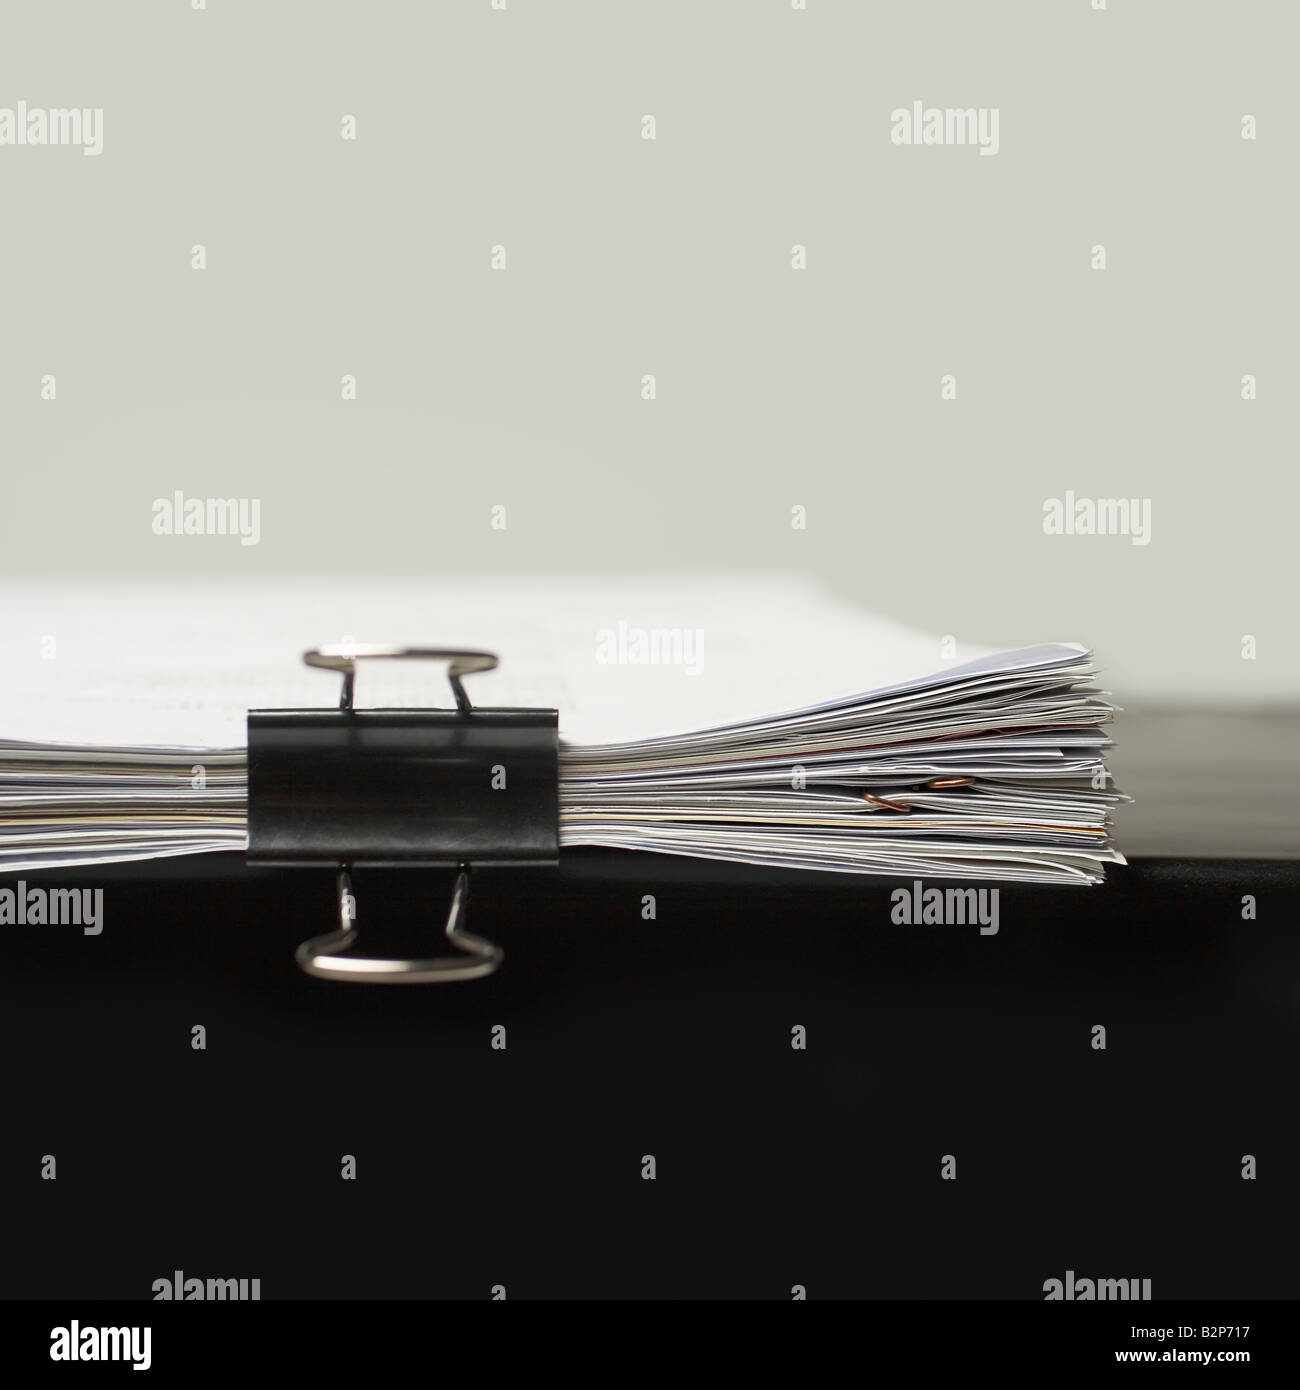 Stack of paperwork clipped together - Stock Image